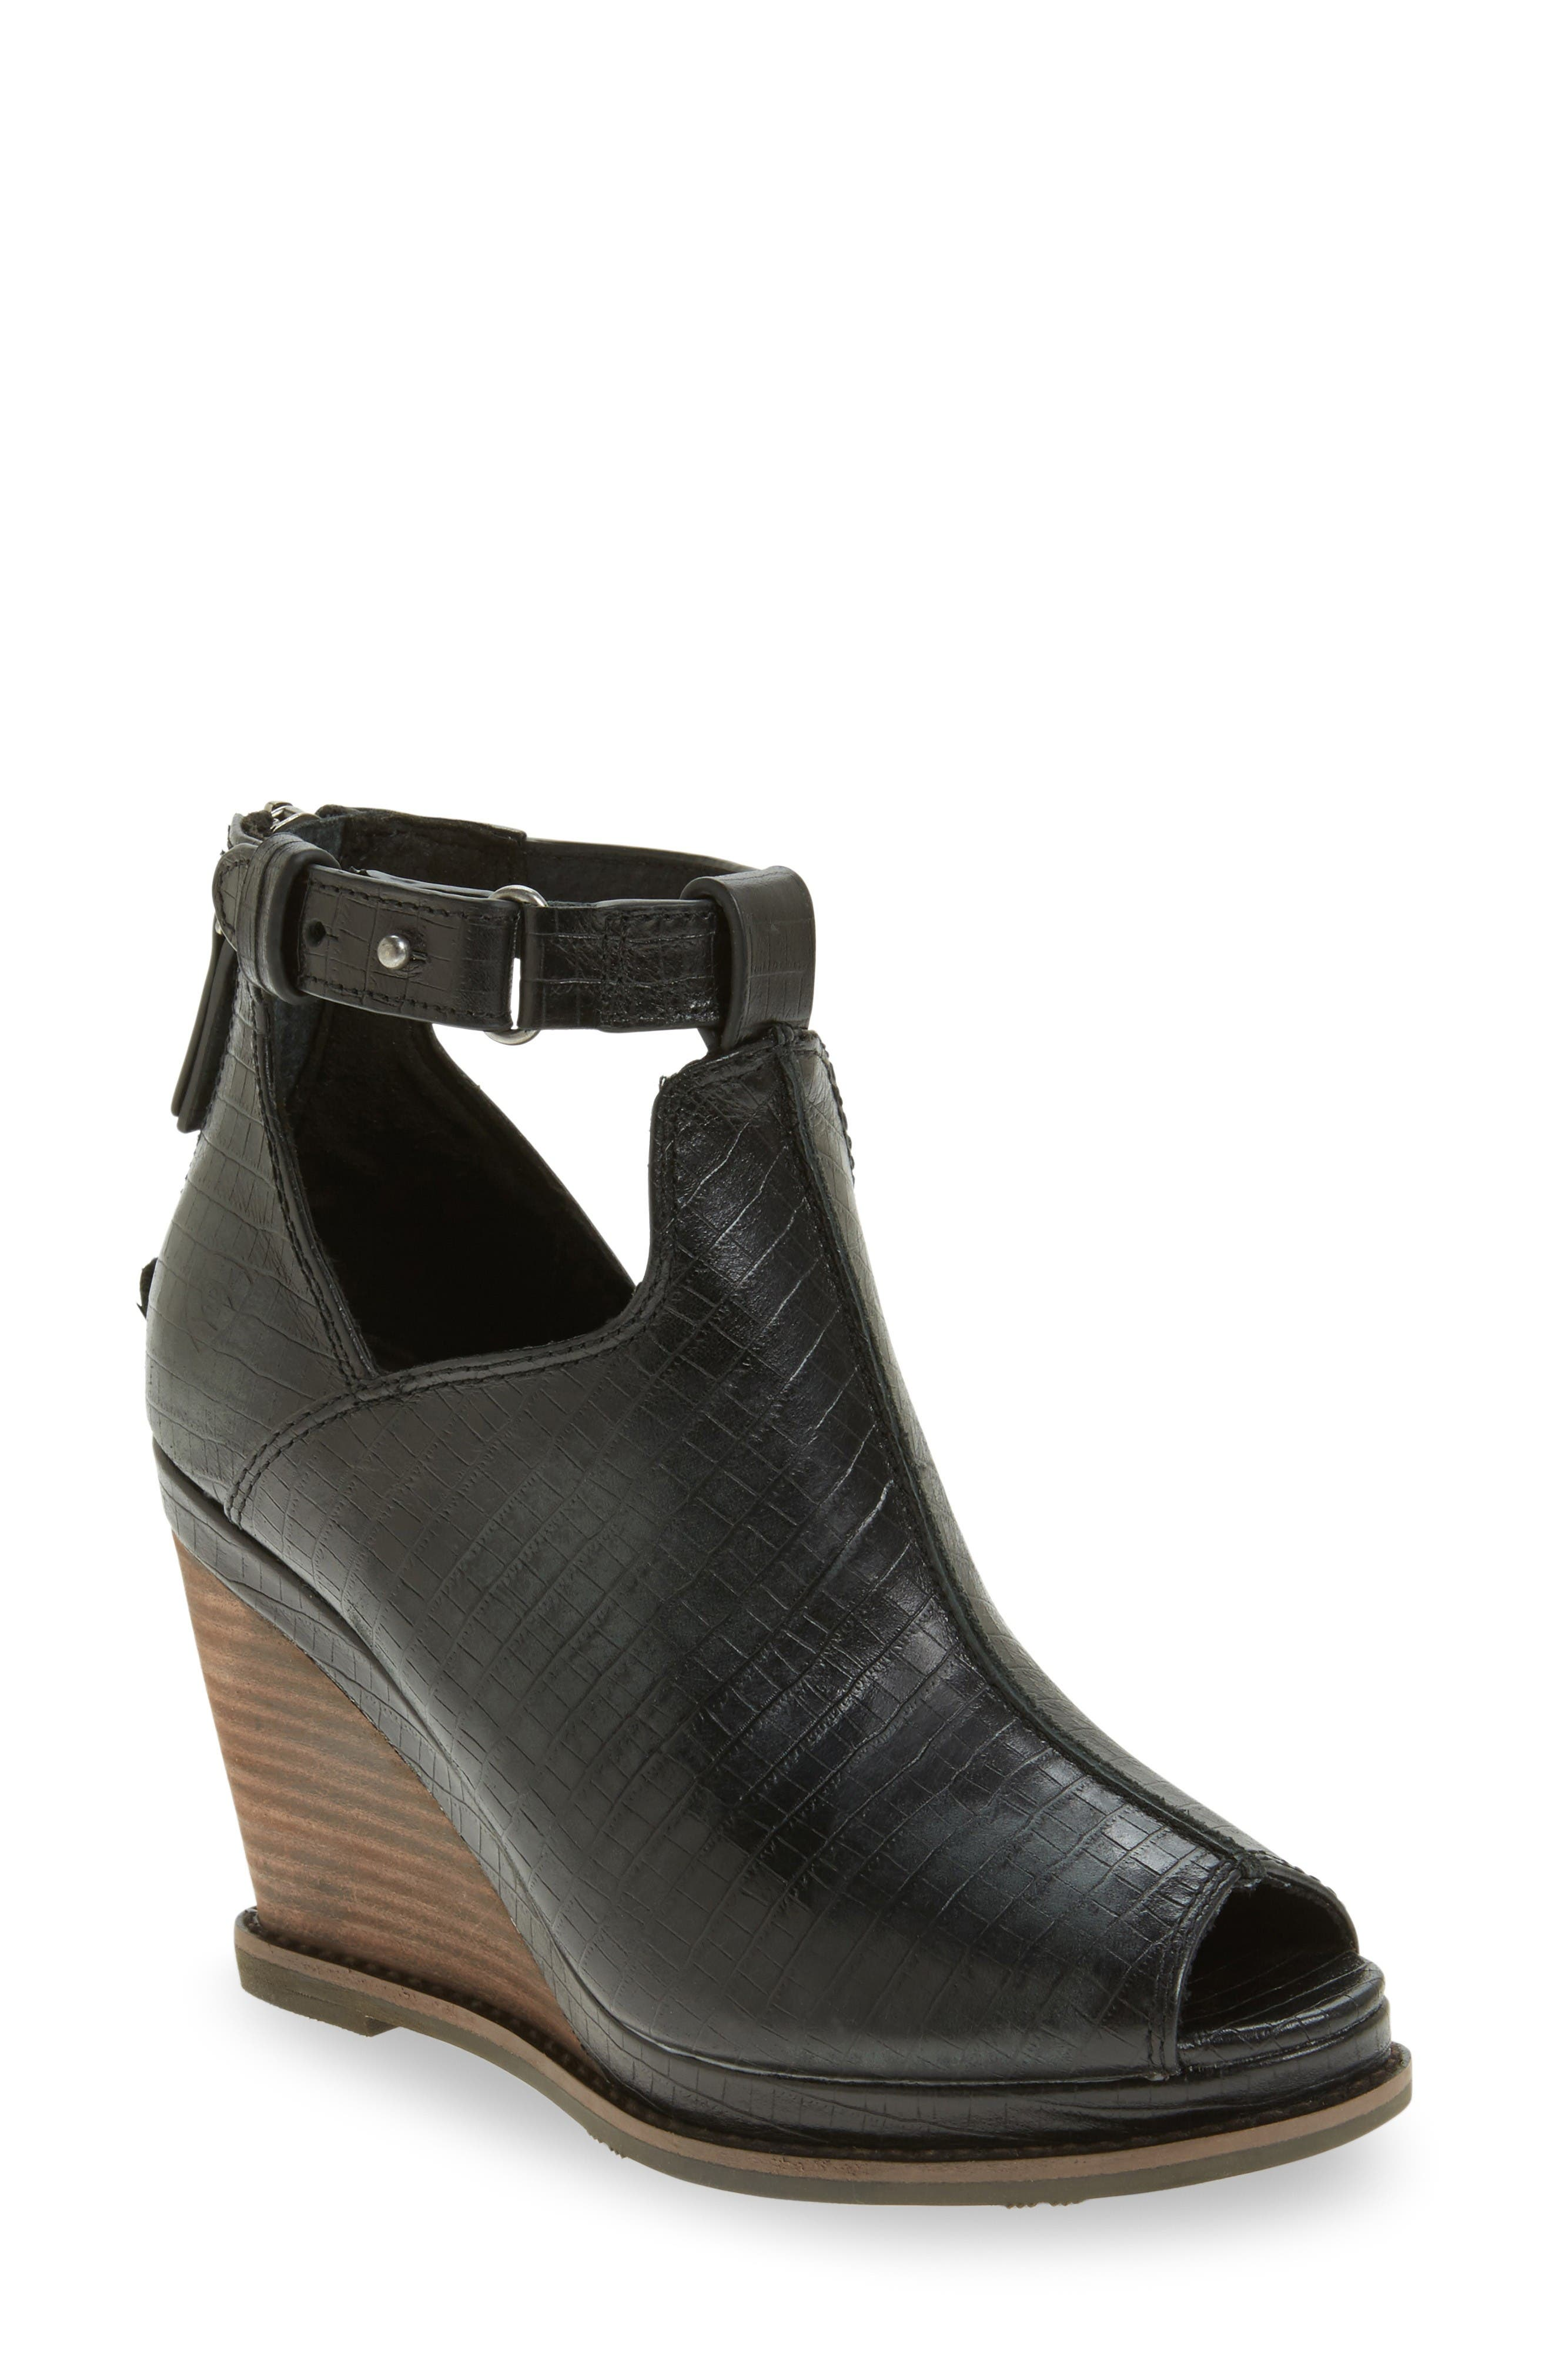 Main Image - Ariat Backstage Wedge Bootie (Women)